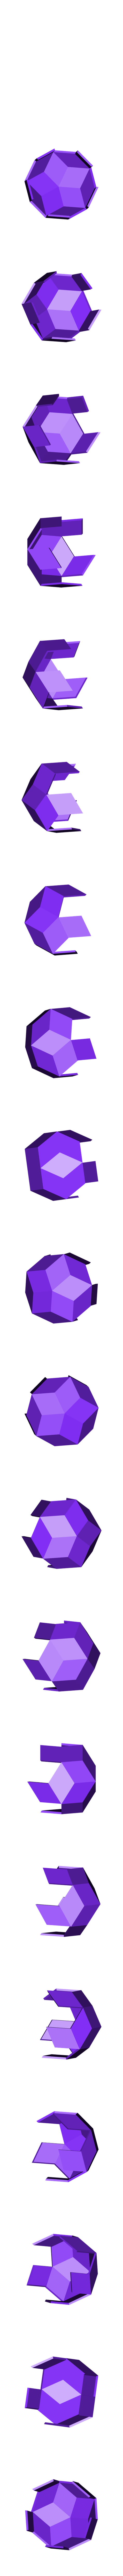 Rh_T_HalfShell_FairPartB_20mm.stl Download free STL file Dissection of a Rhombic Triacontahedron, Golden Ratio • Model to 3D print, LGBU